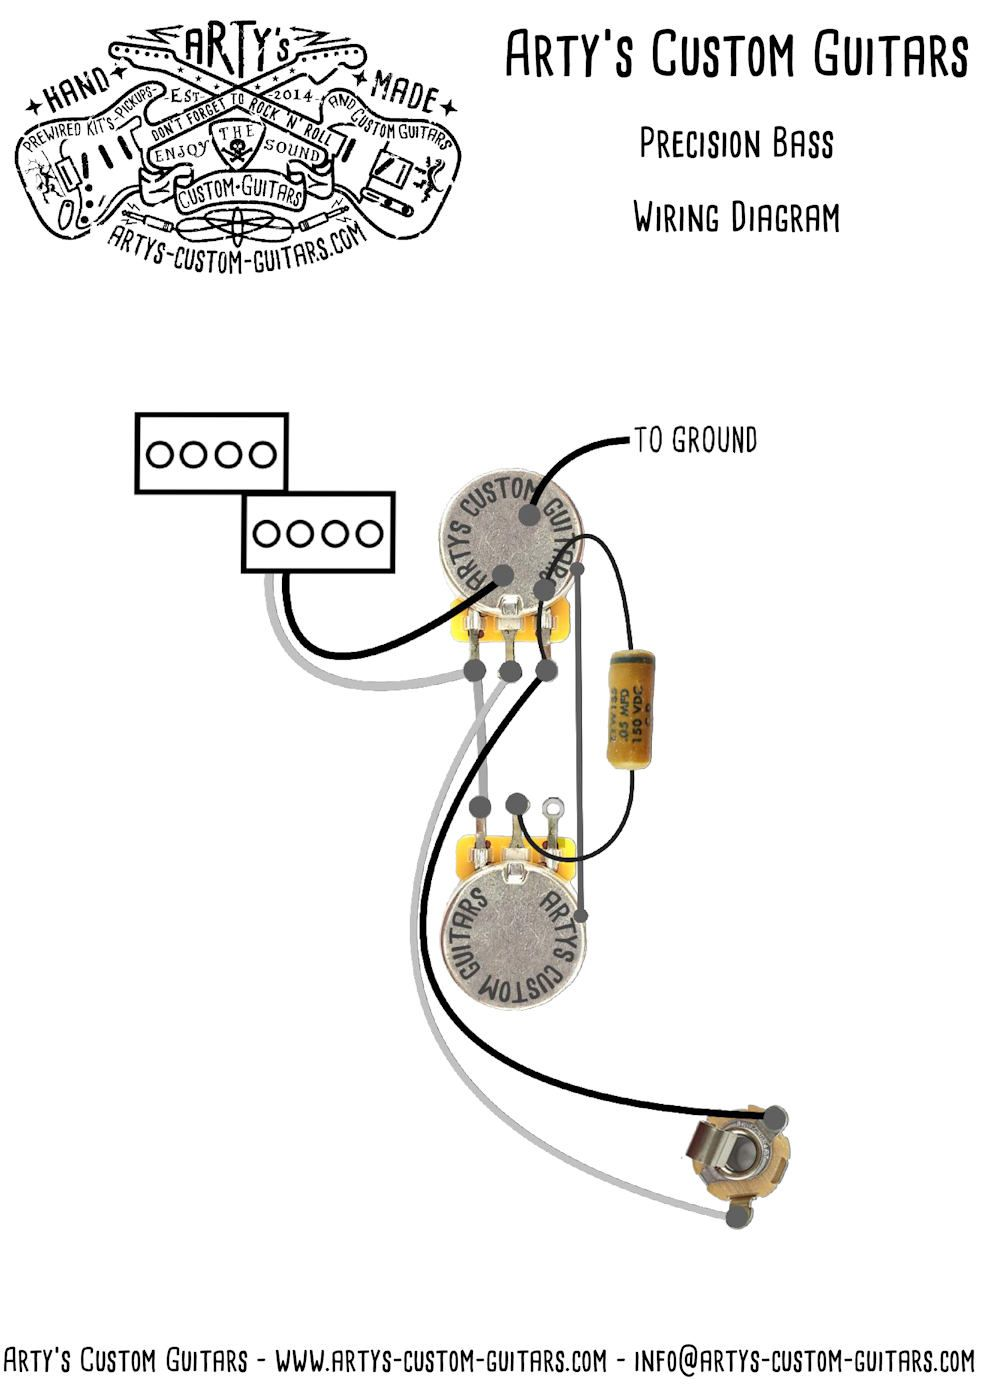 precision bass wiring diagram arty s custom guitars [ 990 x 1400 Pixel ]